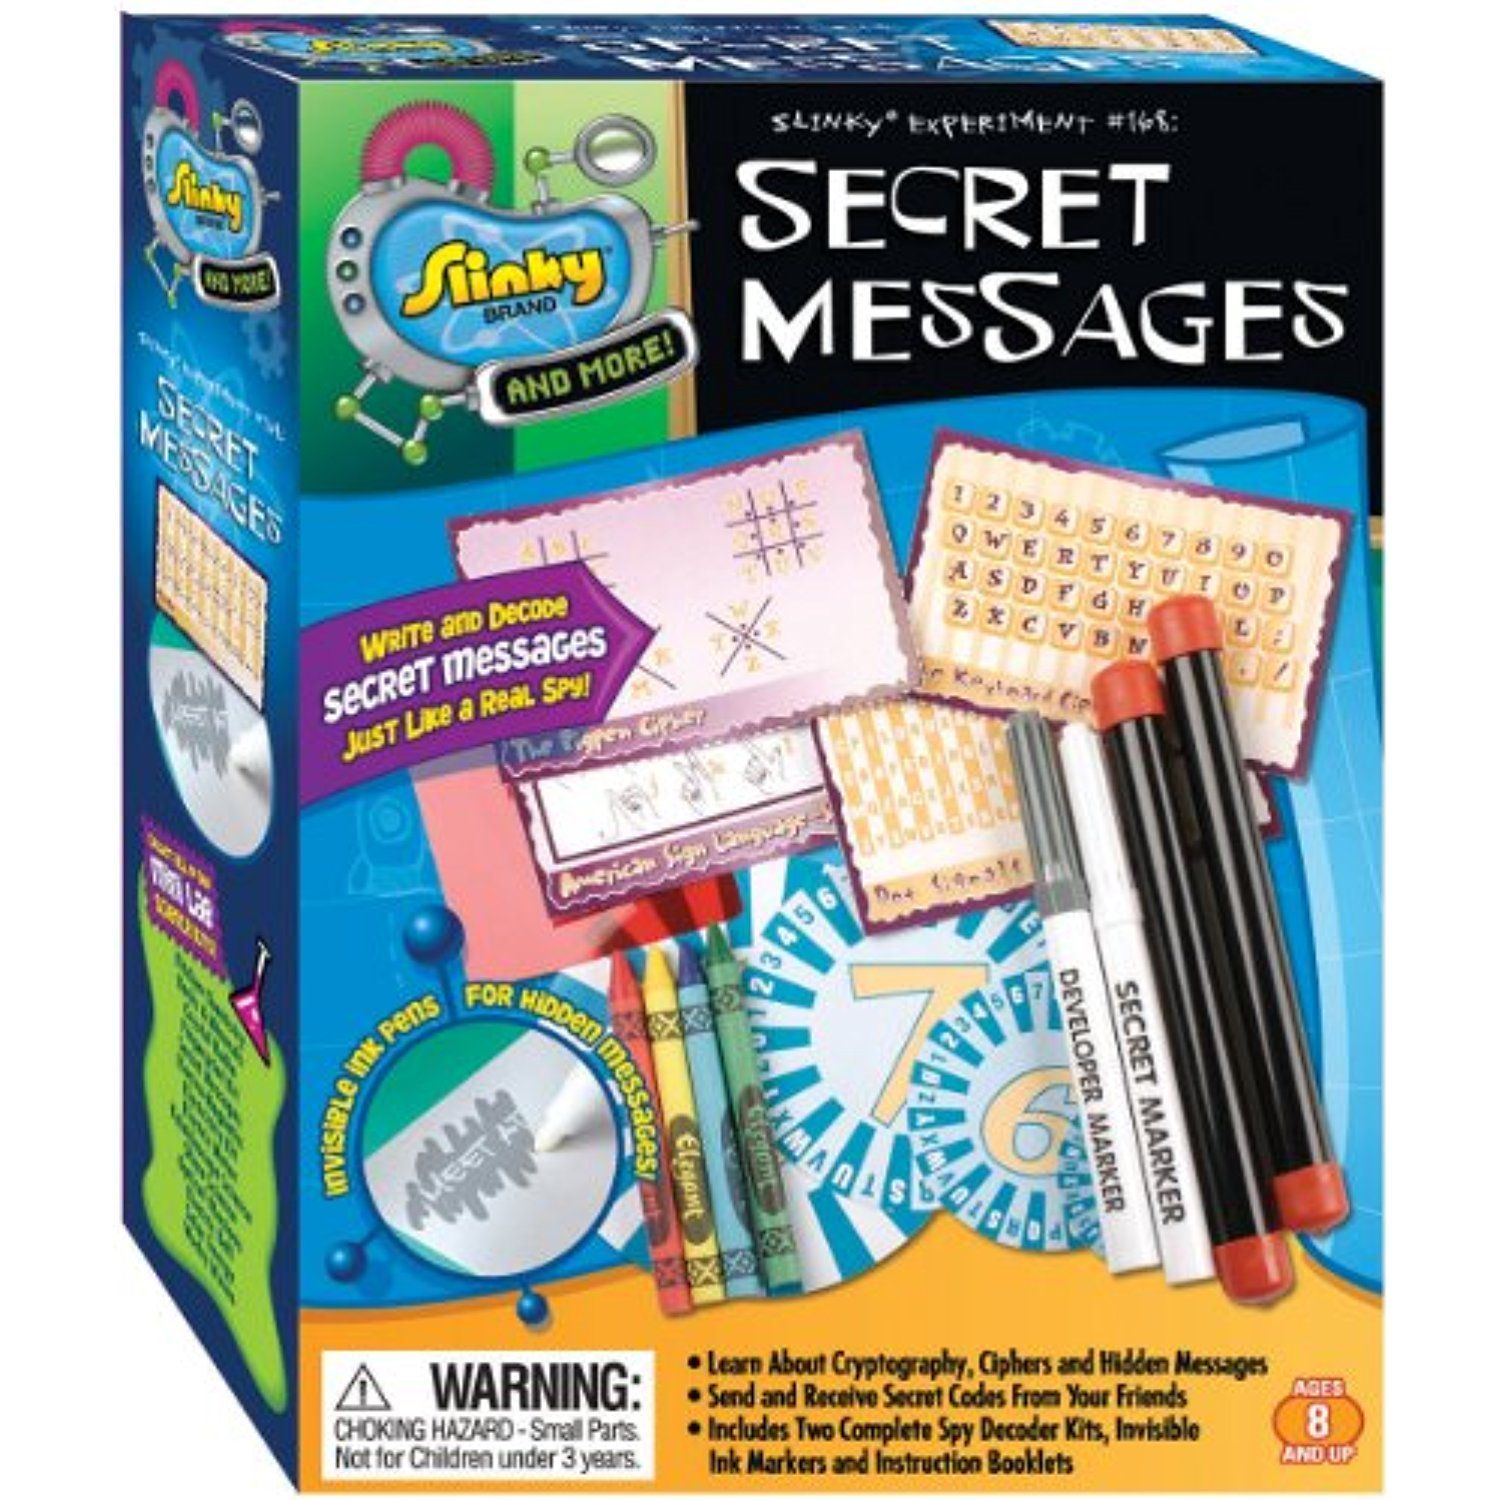 Scientific Explorer Secret Messages Kit Gt Gt Gt Find Out More